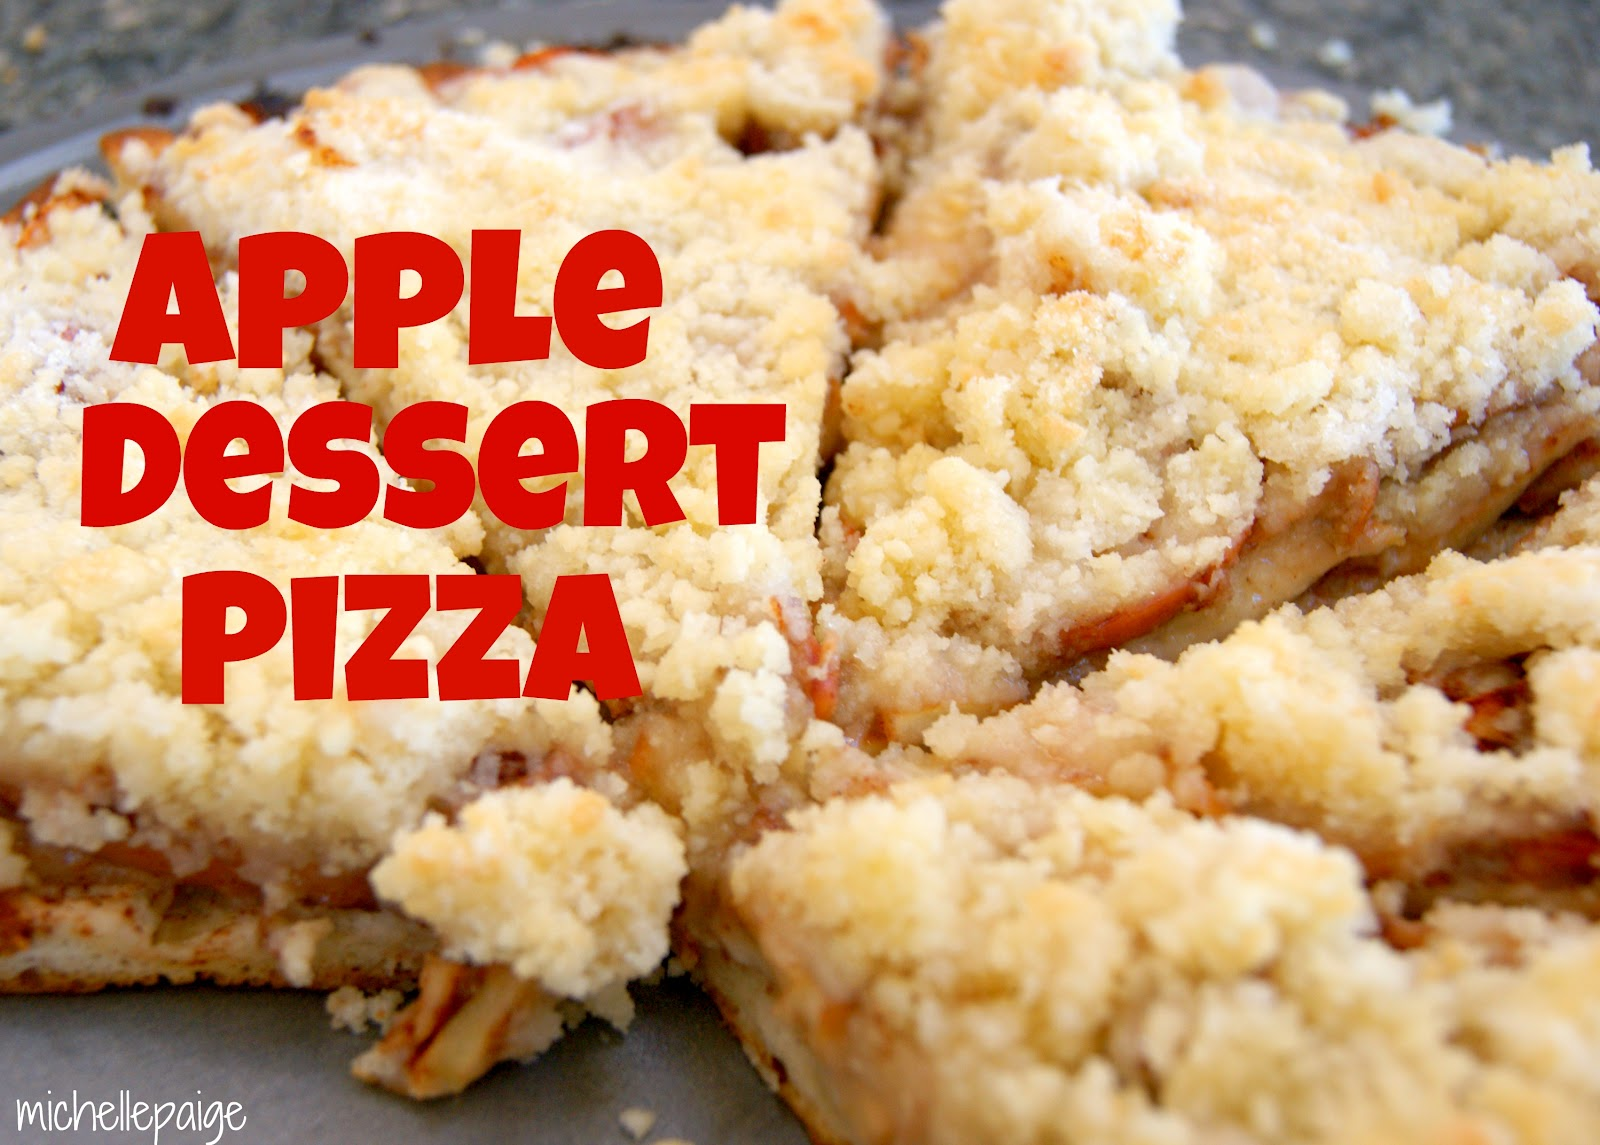 michelle paige blogs: Easy Apple Dessert Pizza